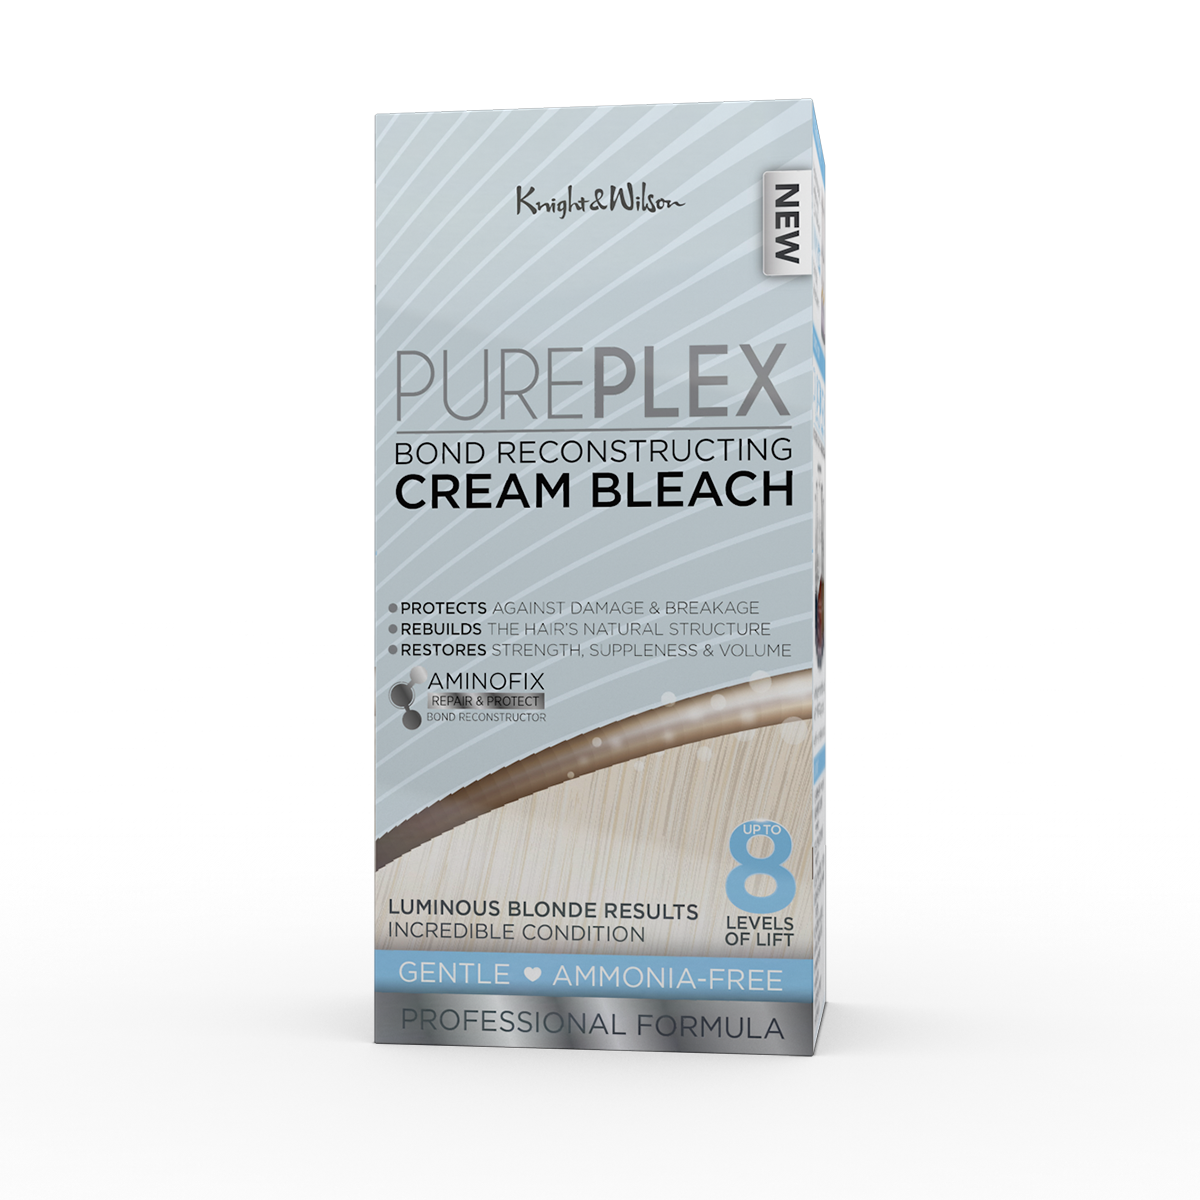 PUREPLEX_CREAM_BLEACH